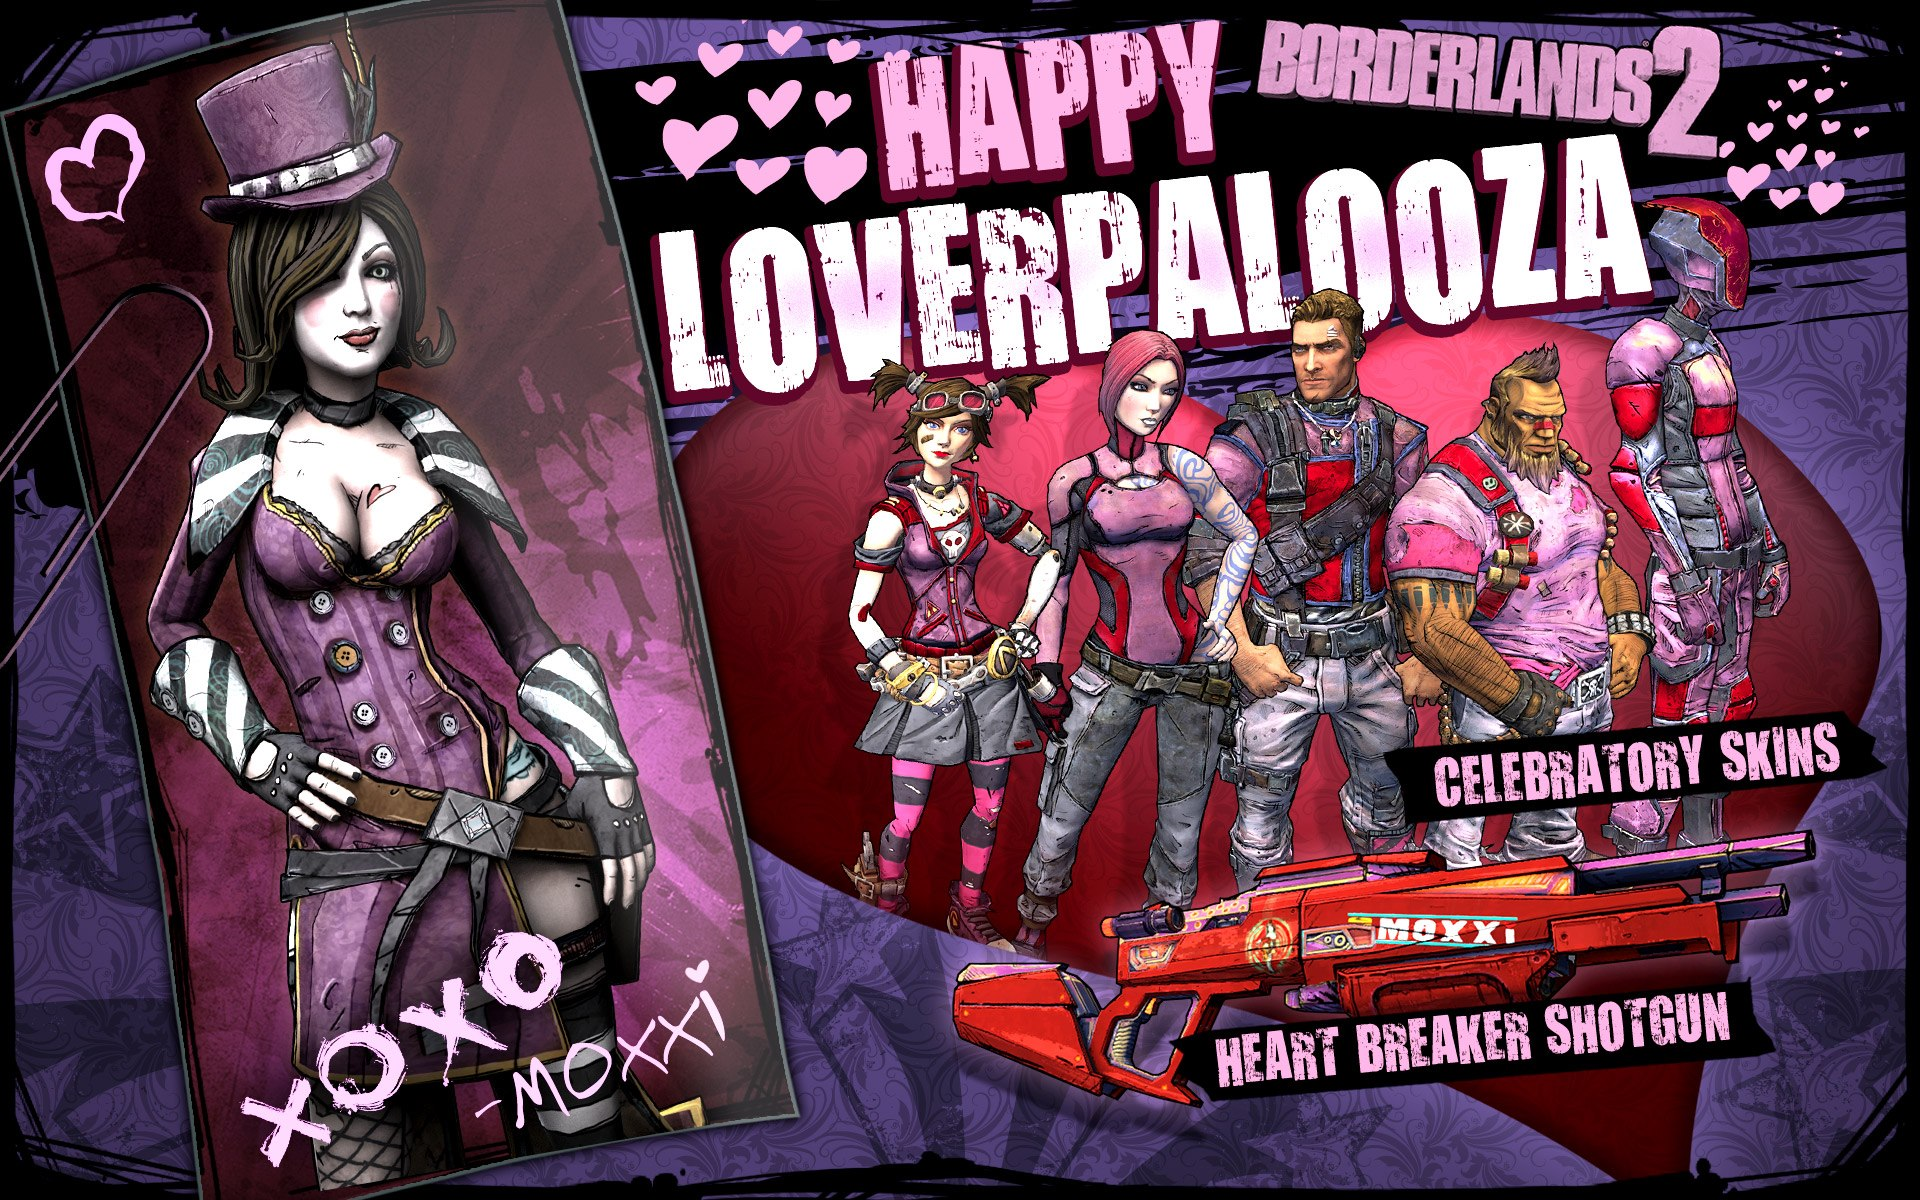 Borderlands 2 SHiFT Codes For Loverpalooza Skins And Heart